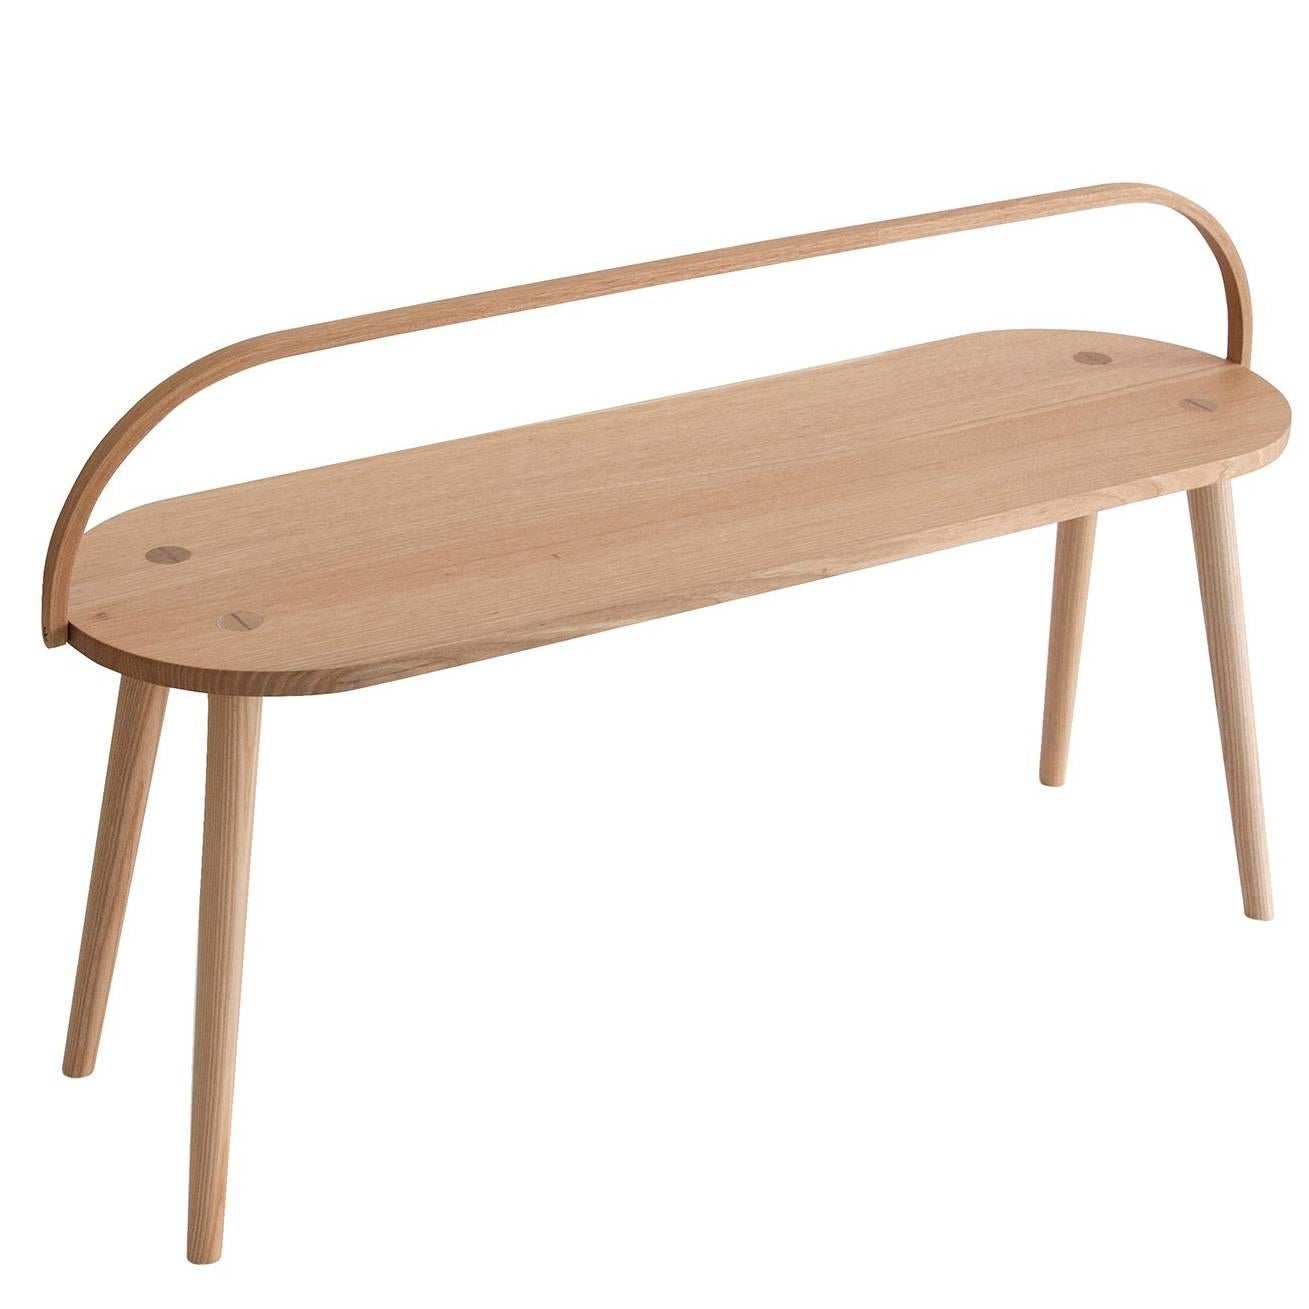 Awesome Bucket Bench, Modern Long Side Table Or Seat With Bentwood Handle In Solid  Ash For